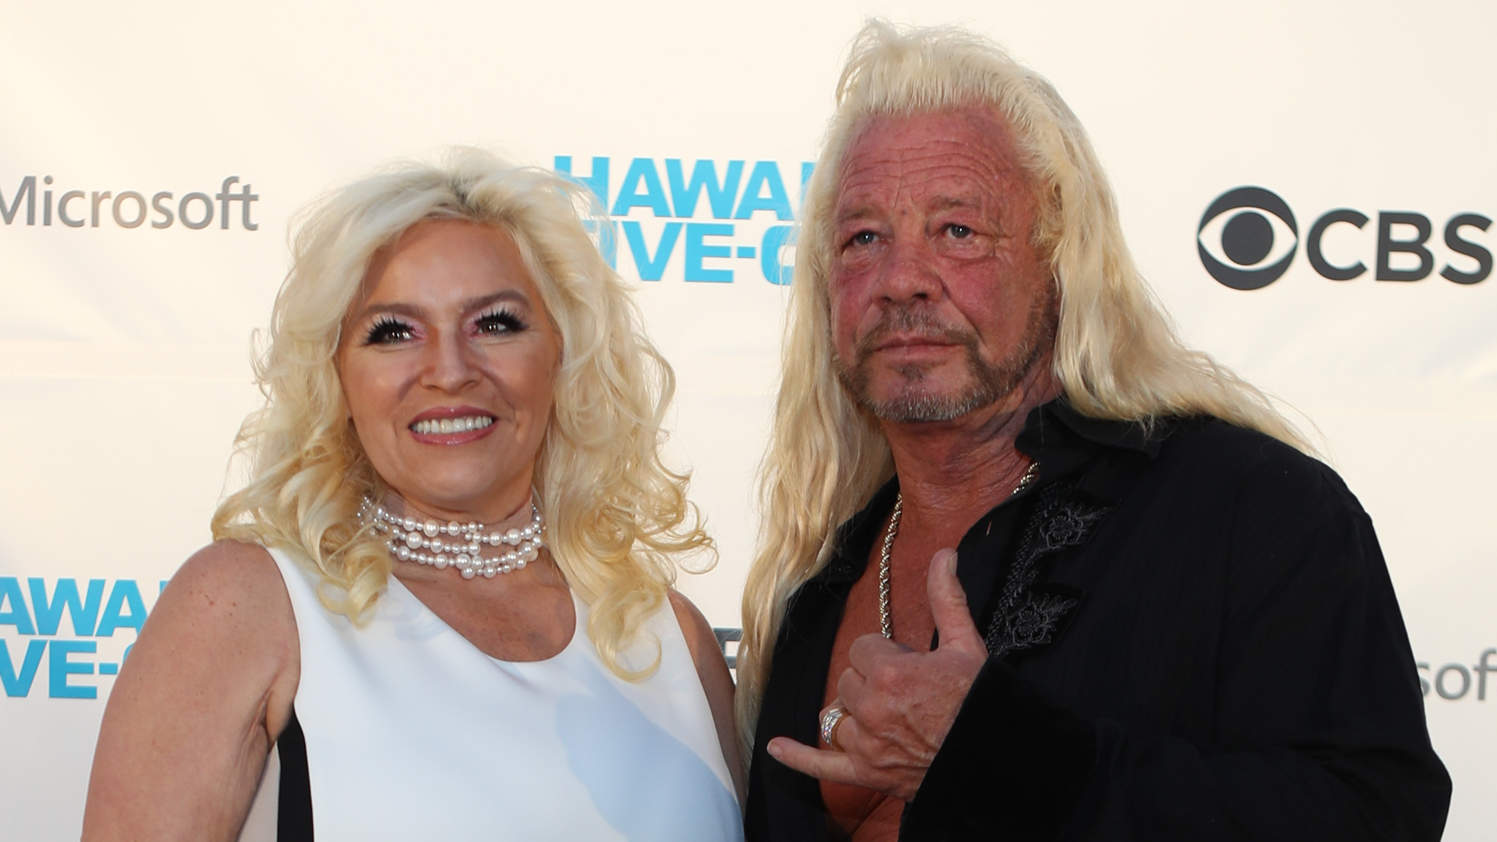 Dog the Bounty Hunter's Wife Beth Chapman On Her Throat Cancer: 'They Give Me 50/50 Chances'